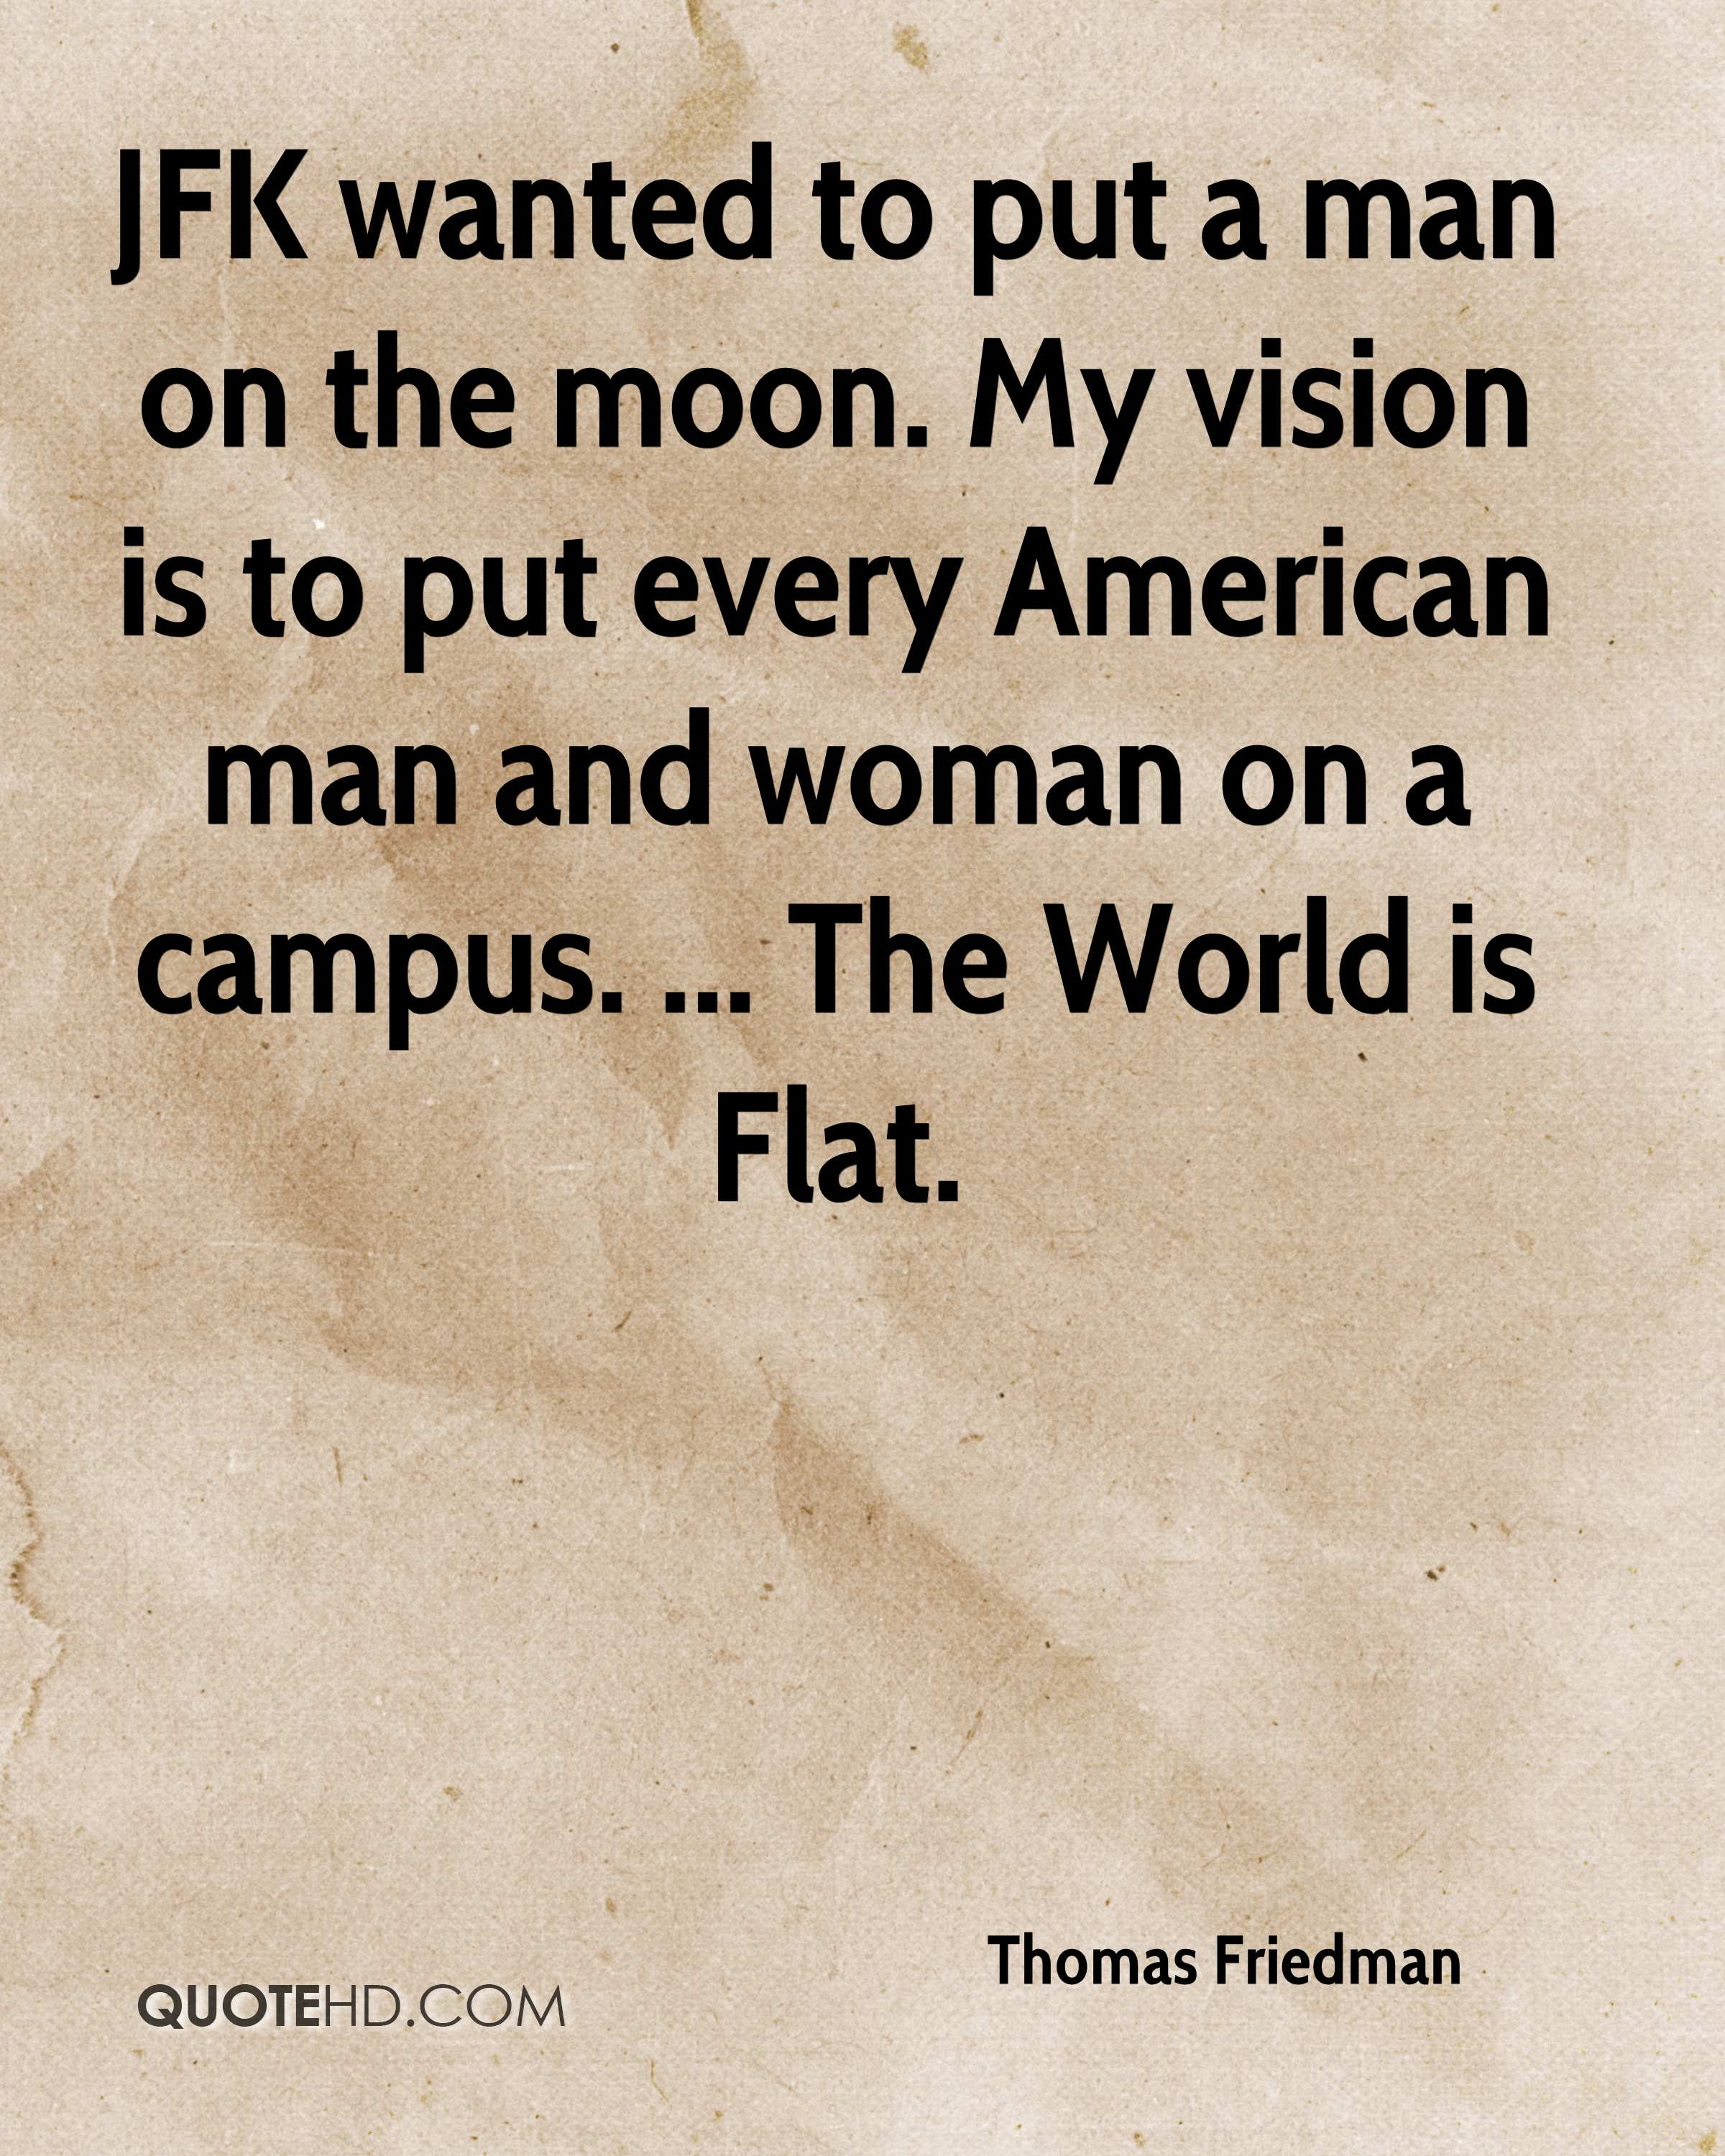 JFK wanted to put a man on the moon. My vision is to put every American man and woman on a campus. ... The World is Flat.